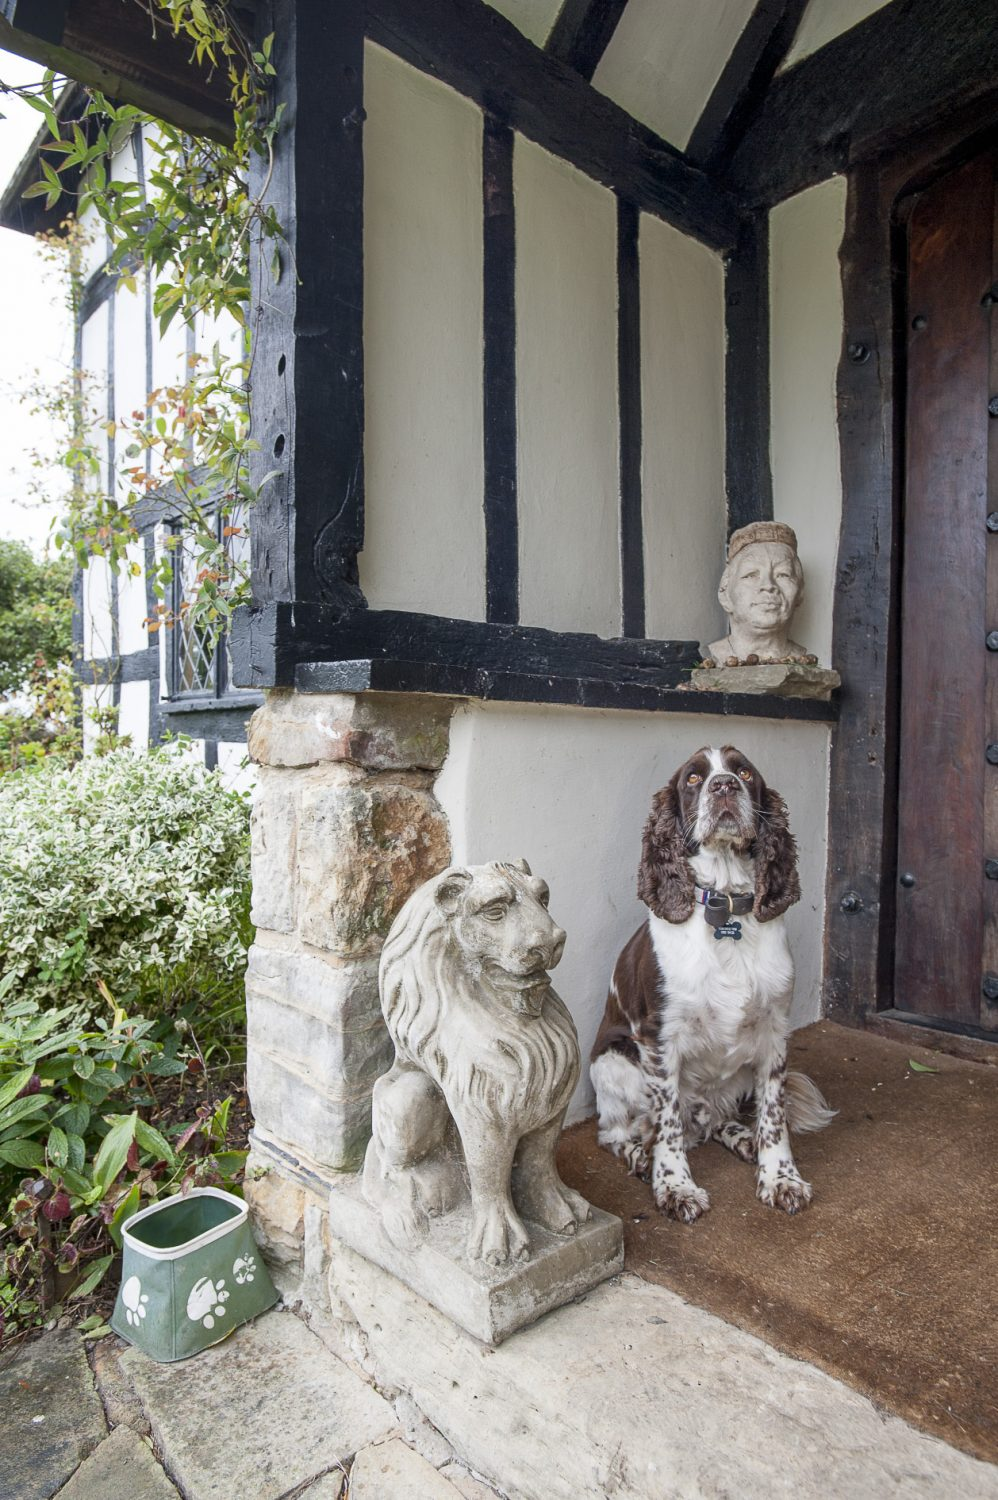 Monty, the family's spaniel stands guard by the front door